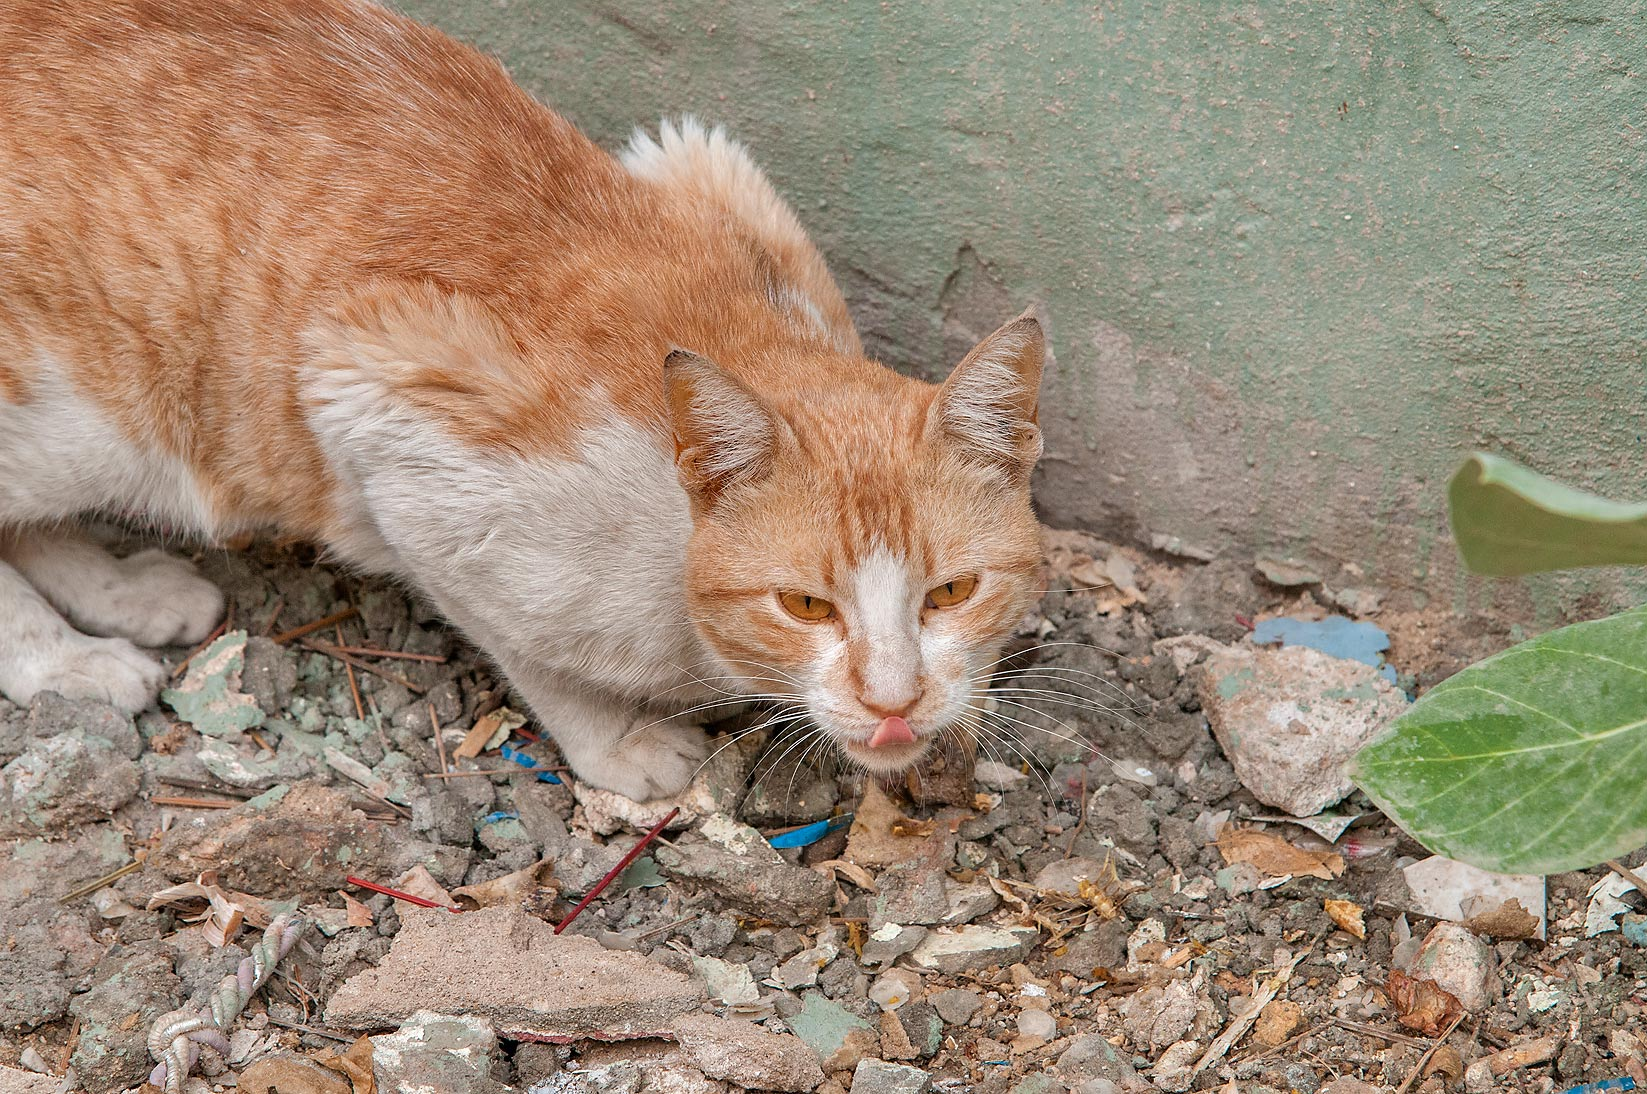 Sneaking arabian mau cat in Musheirib area. Doha, Qatar